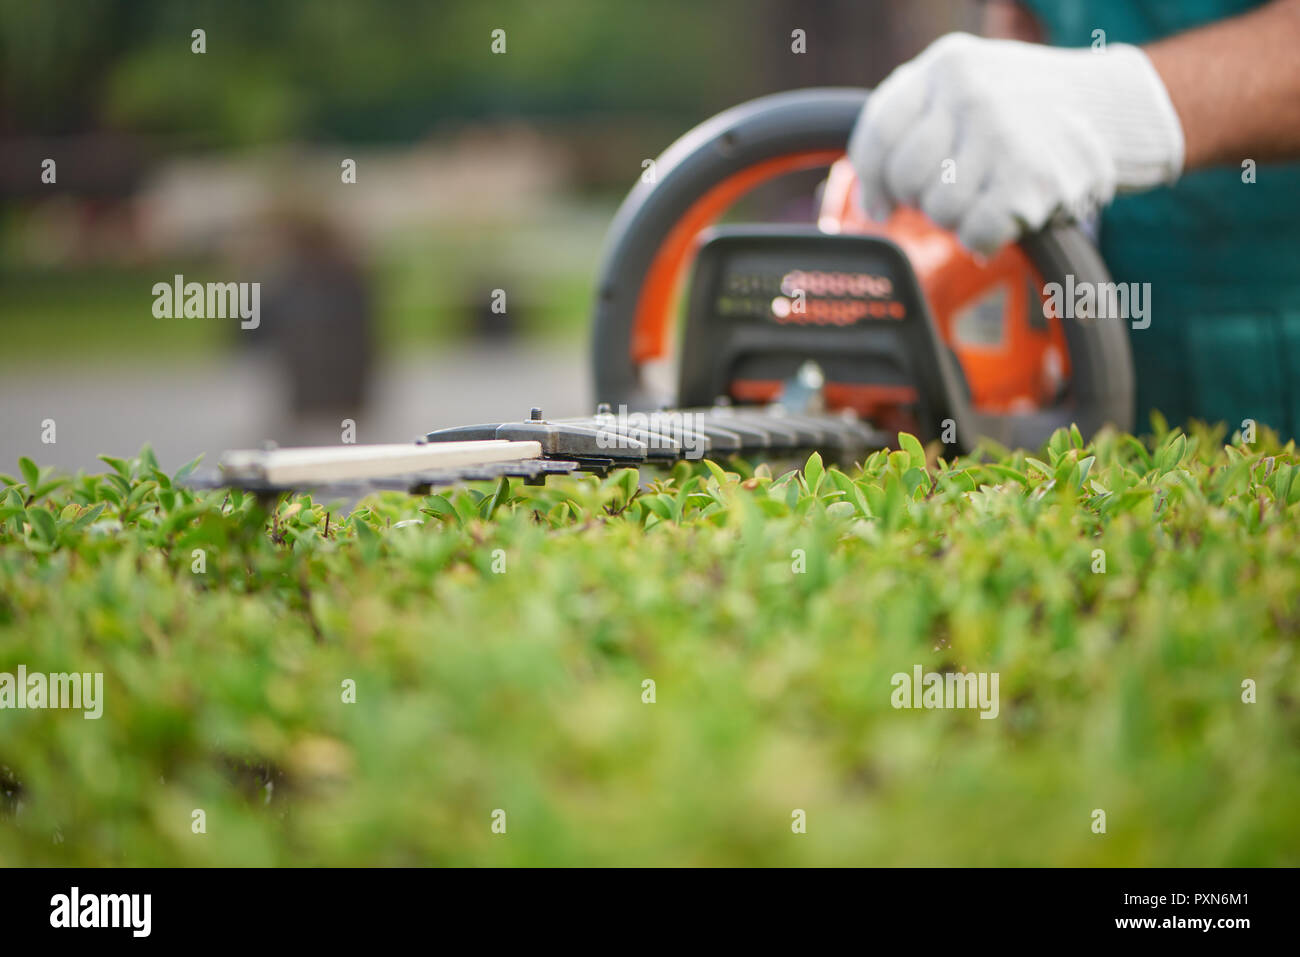 Close up of hedge trimmer cutting bushes to ideal fence. Male gardener, wearing in overalls with protective glove working with professional garden equipment in backyard. Trimming work in garden. - Stock Image